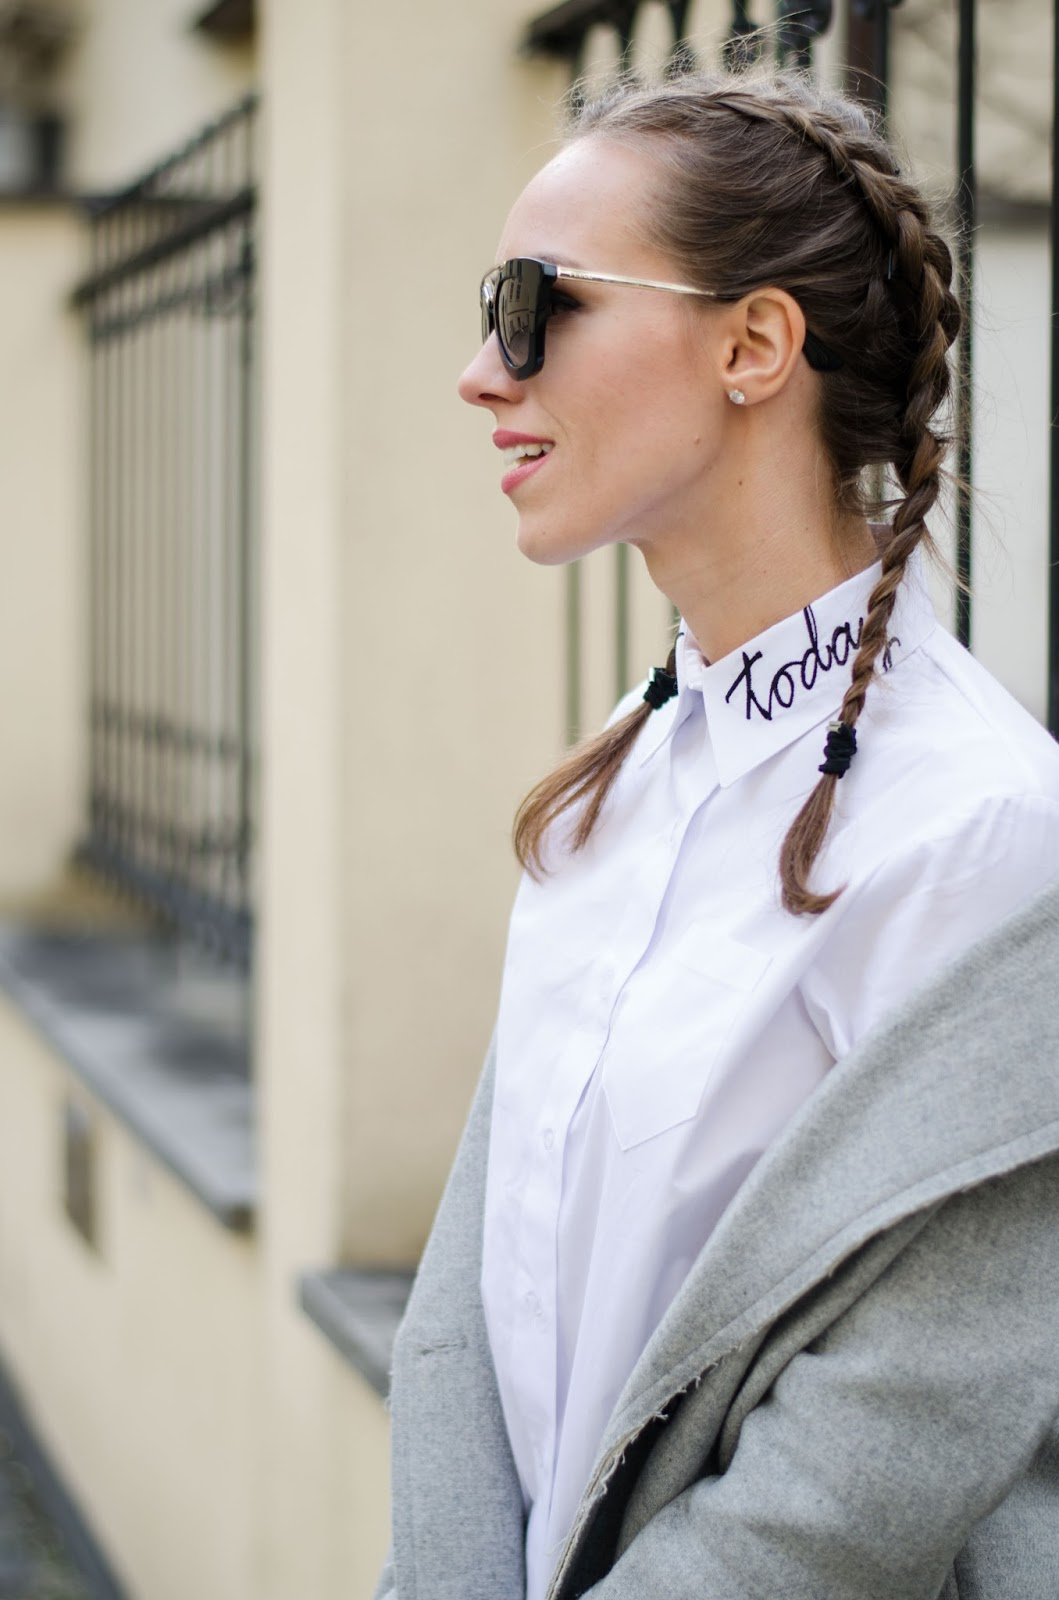 kristjaana mere french braids white collar shirt with letter print lucky today